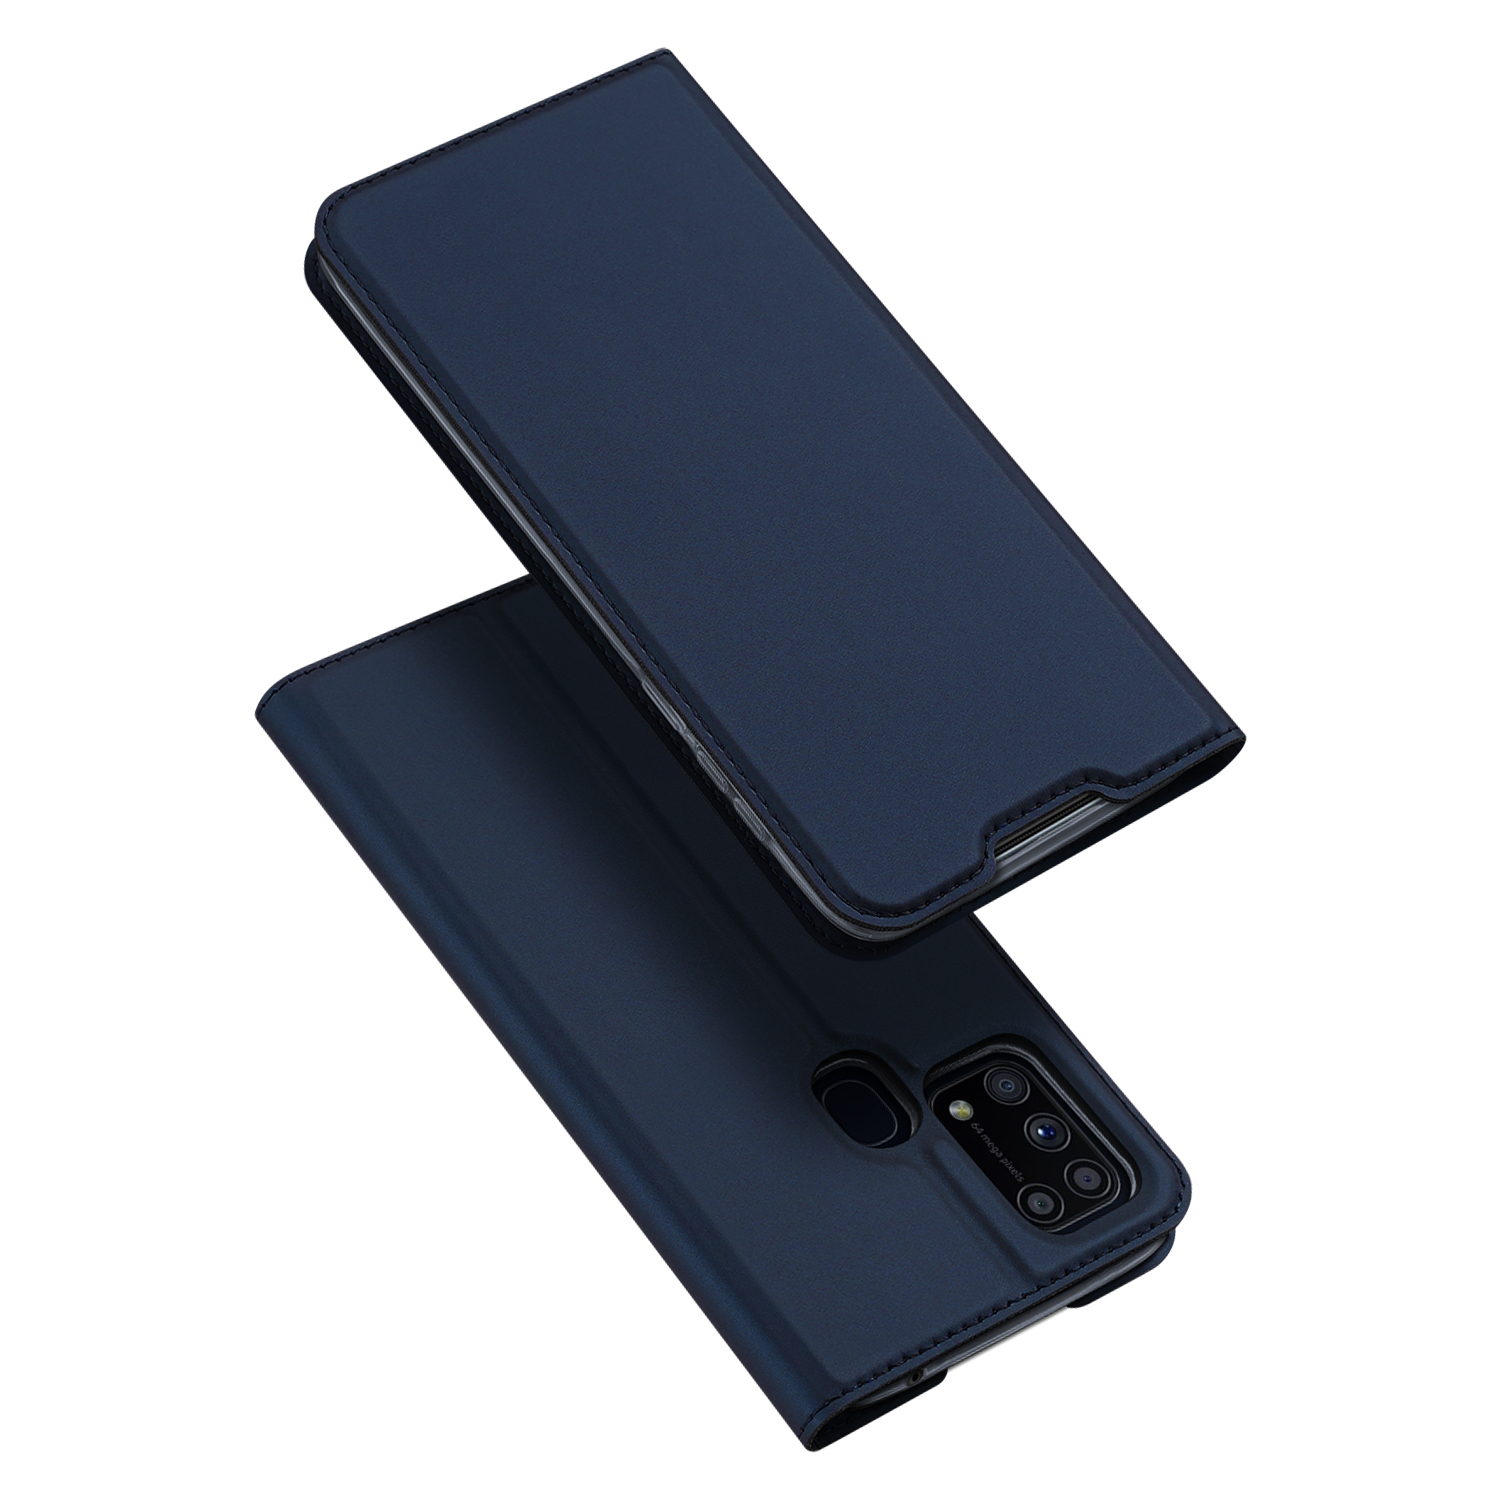 DUX DUCIS For Samsung M31 Leather Mobile Phone Cover Magnetic Protective Case Bracket with Cards Slot blue